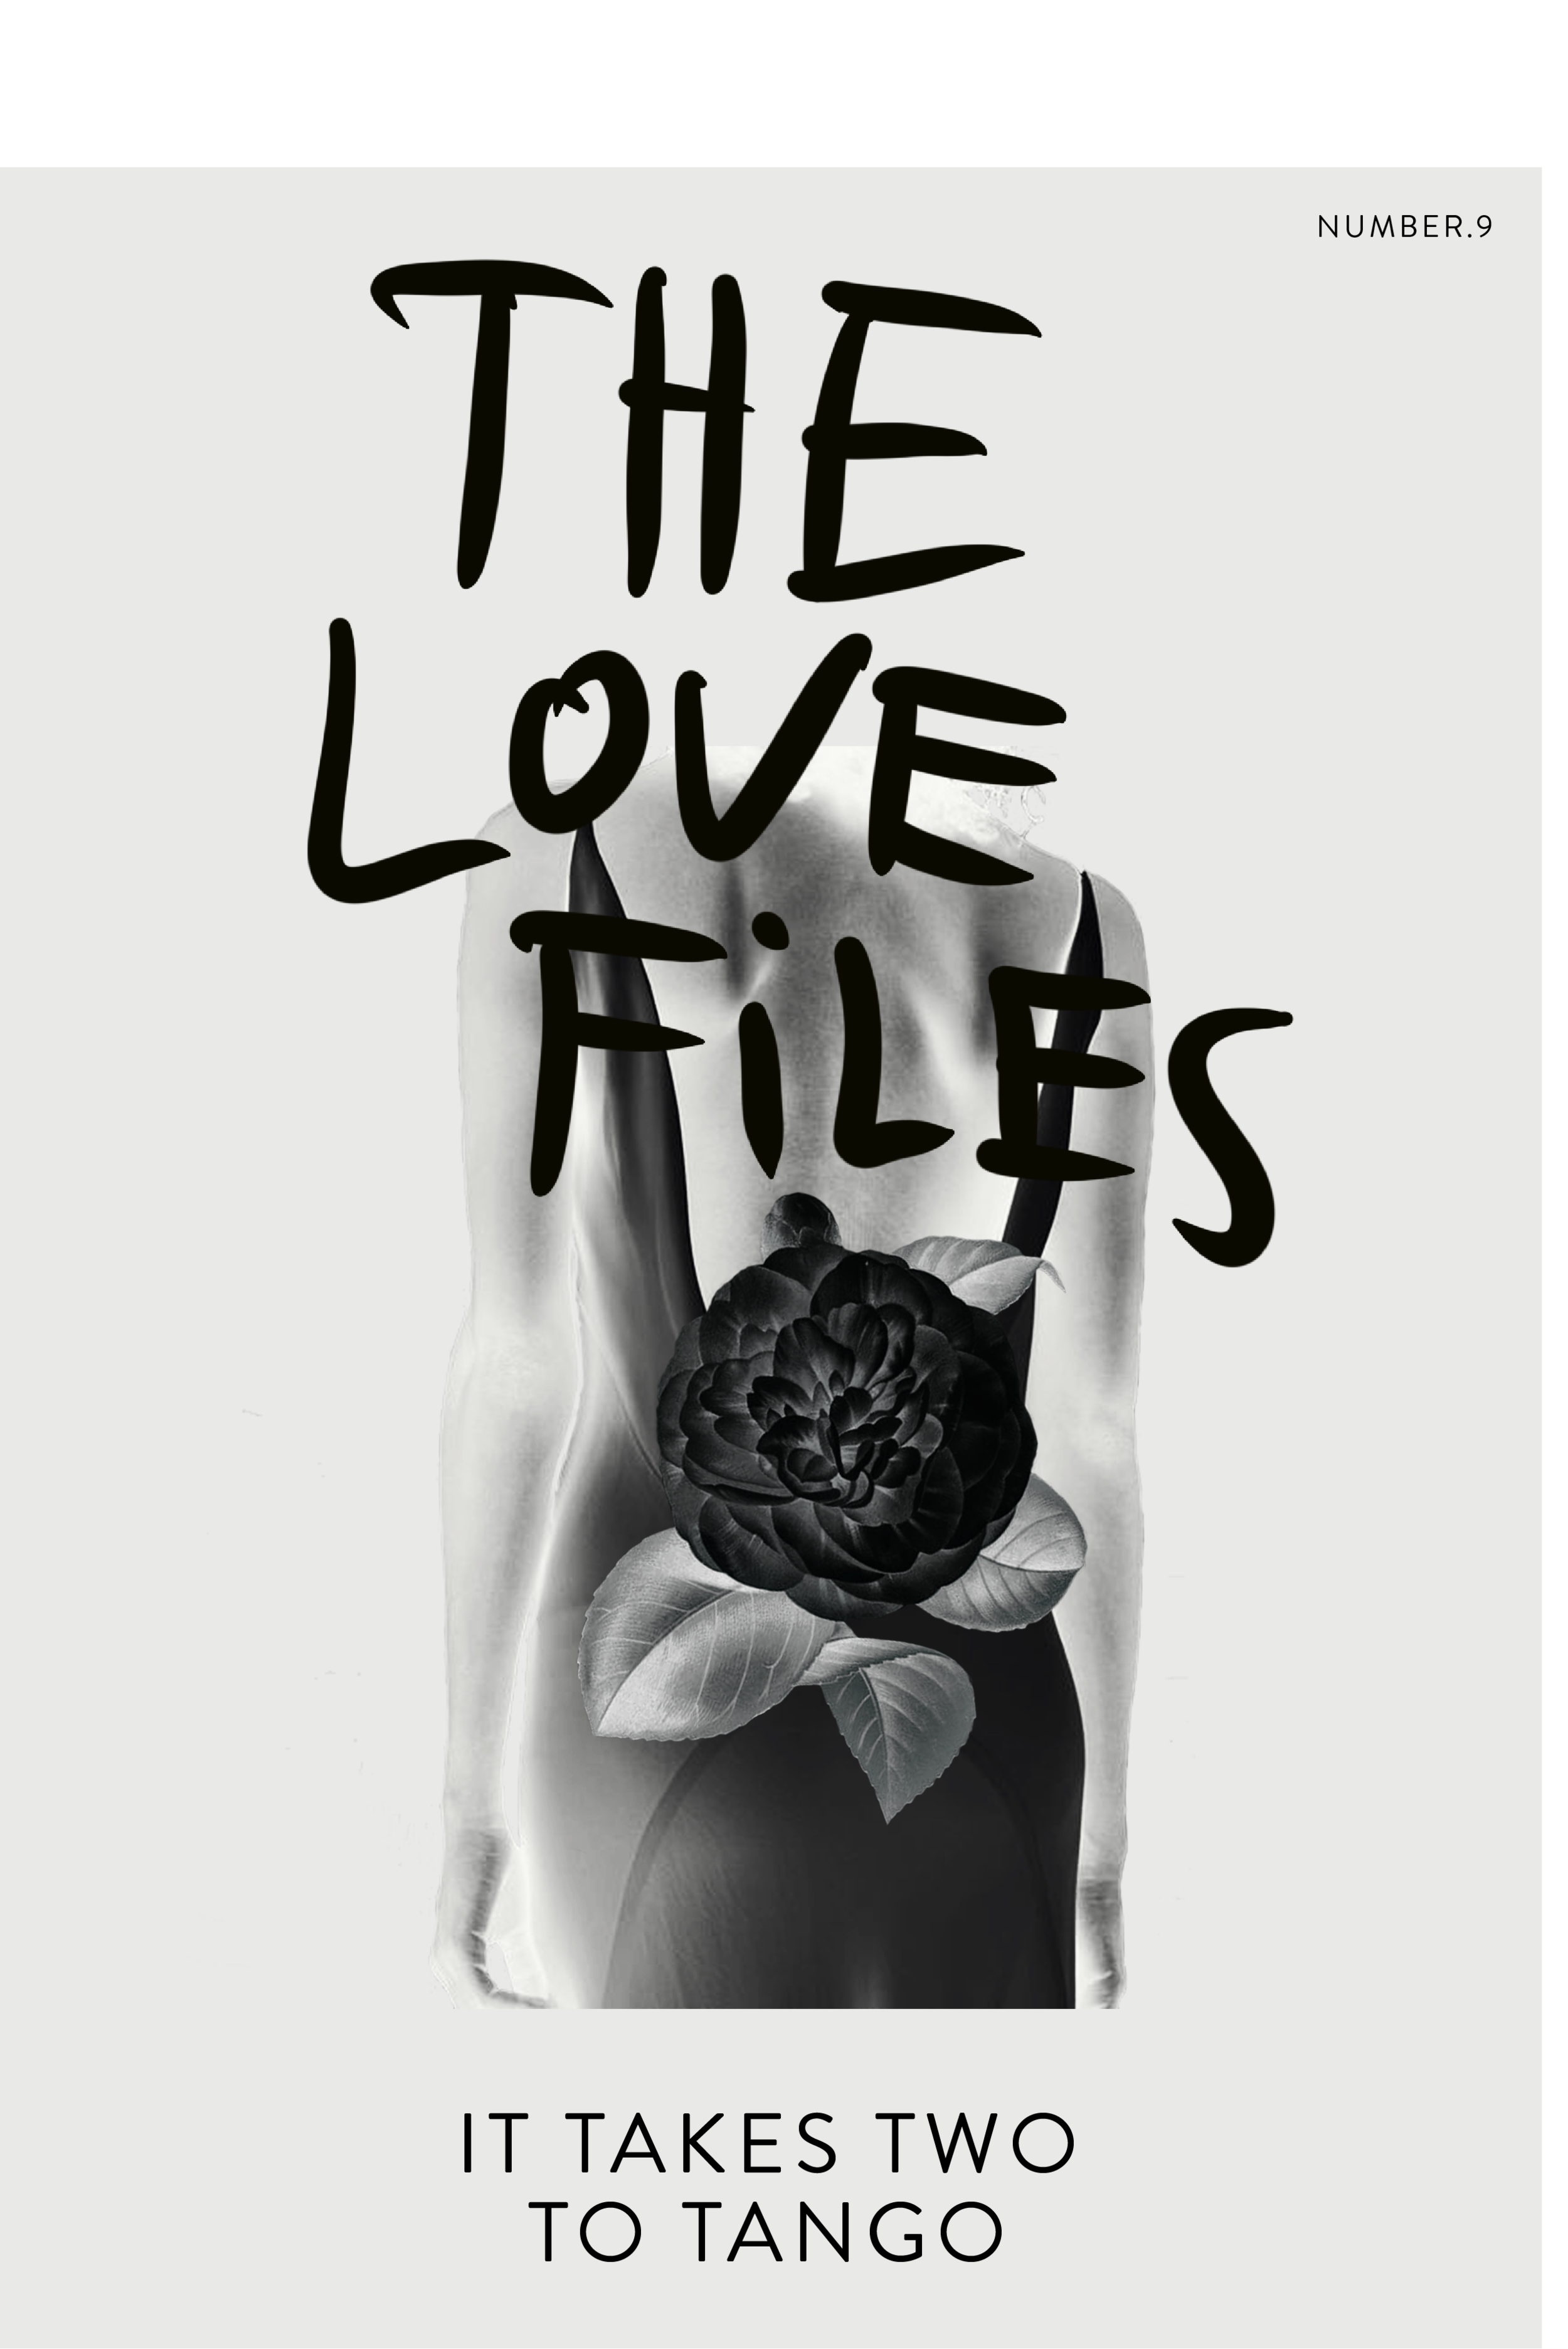 The Love Files No.9 // It takes two to tango #design #graphicdesign #layout #love #relationships #collage #thelovesfiles #wellbeing #emotionalhealth #selfcareblog #relationshipblog #lettering #minimalism #baggagereclaim